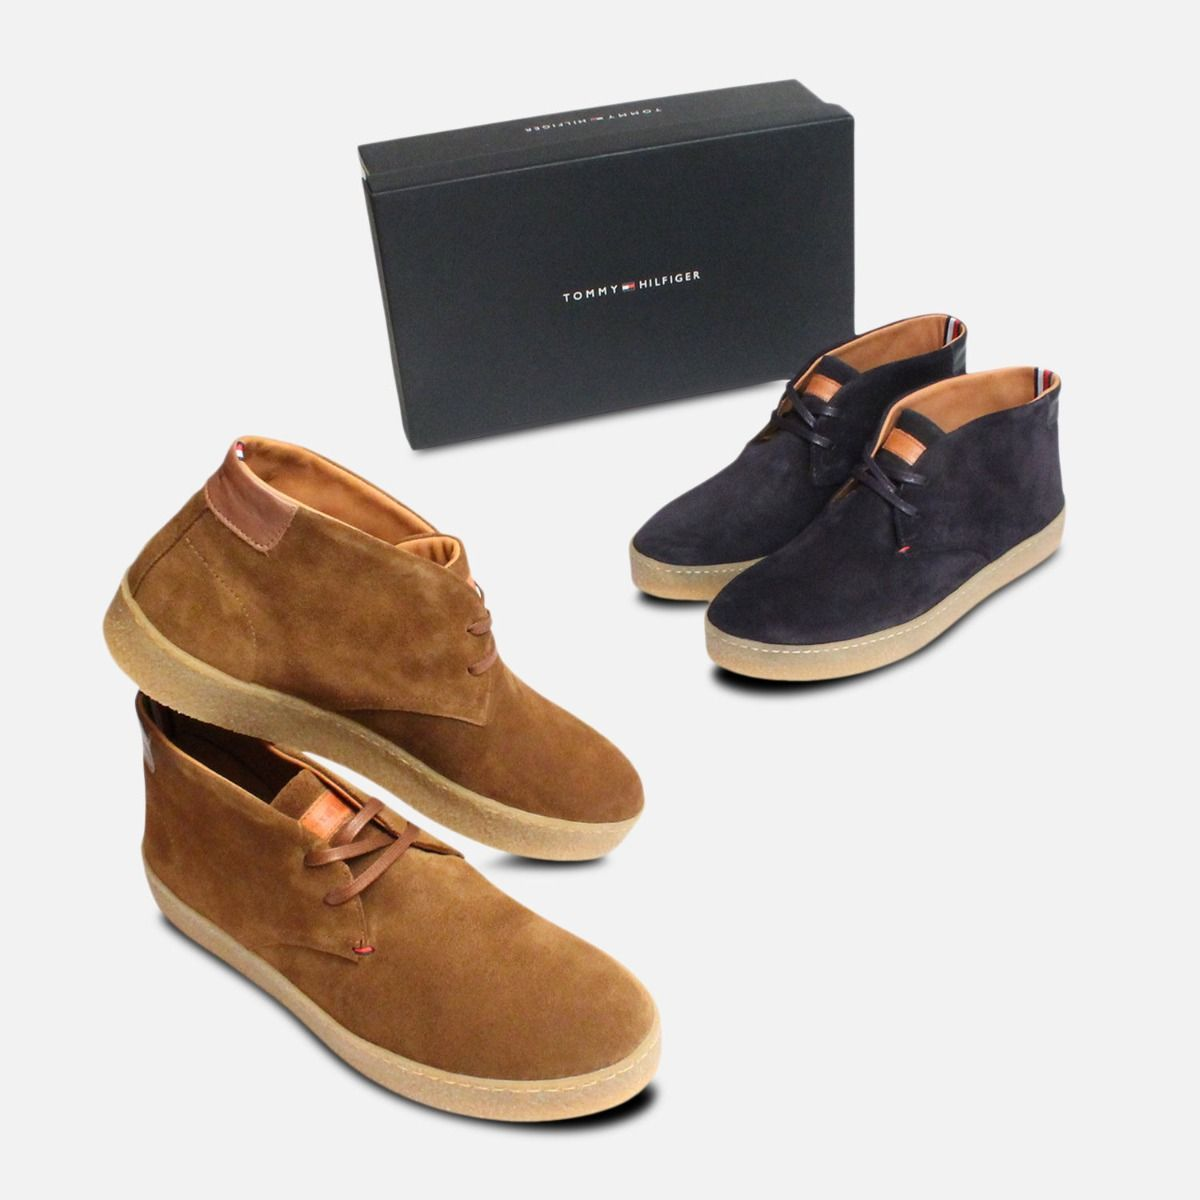 Tobacco Suede Tommy Hilfiger Logan Crepe Sole Boot